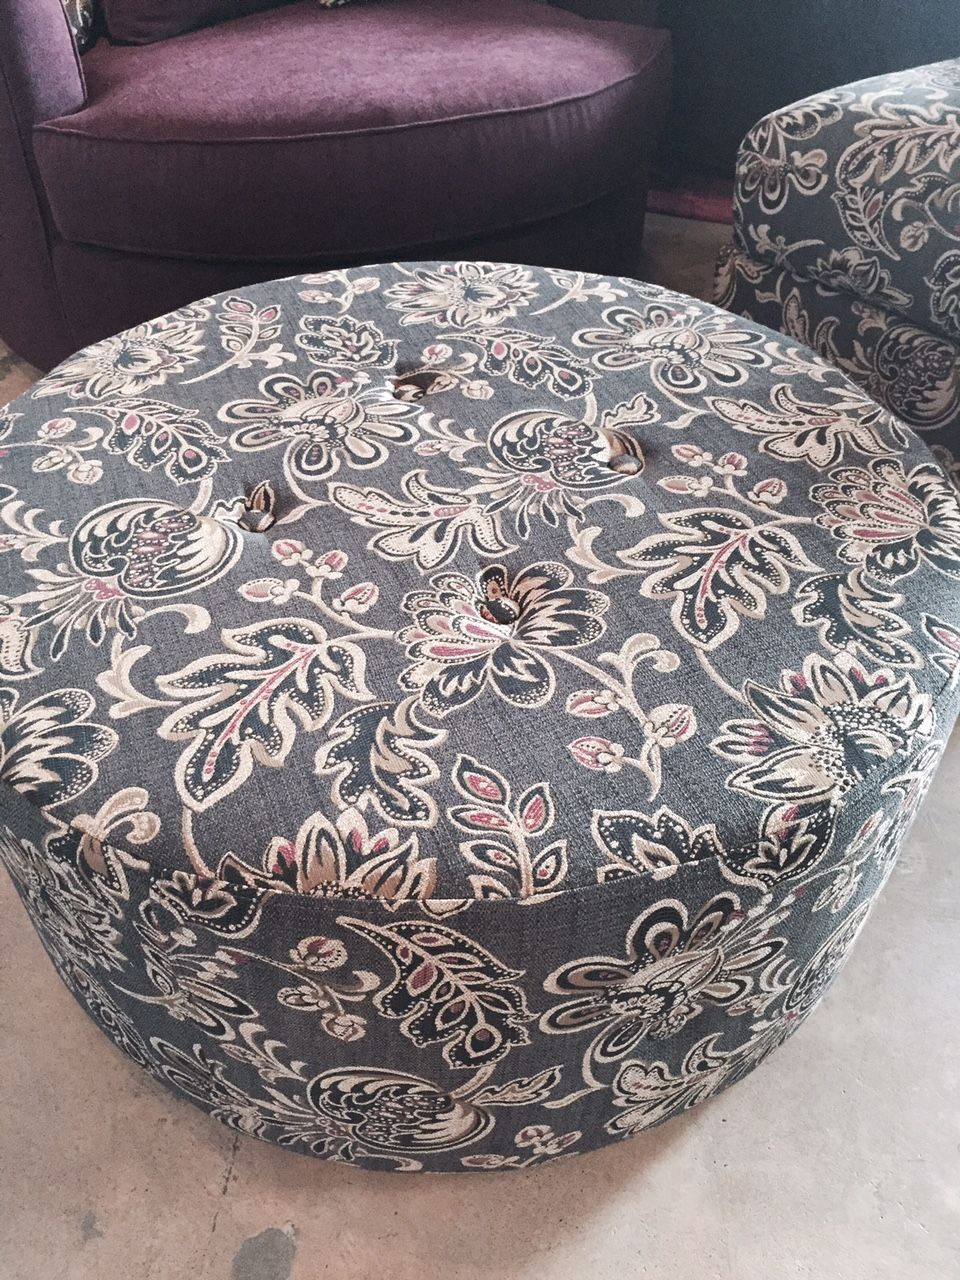 Canadian Made Custom Ottomans The Gloria Can Be Used For A Coffee Table Ottoman Or Extra Seating Many Fabric Options Available Make It Like You Want